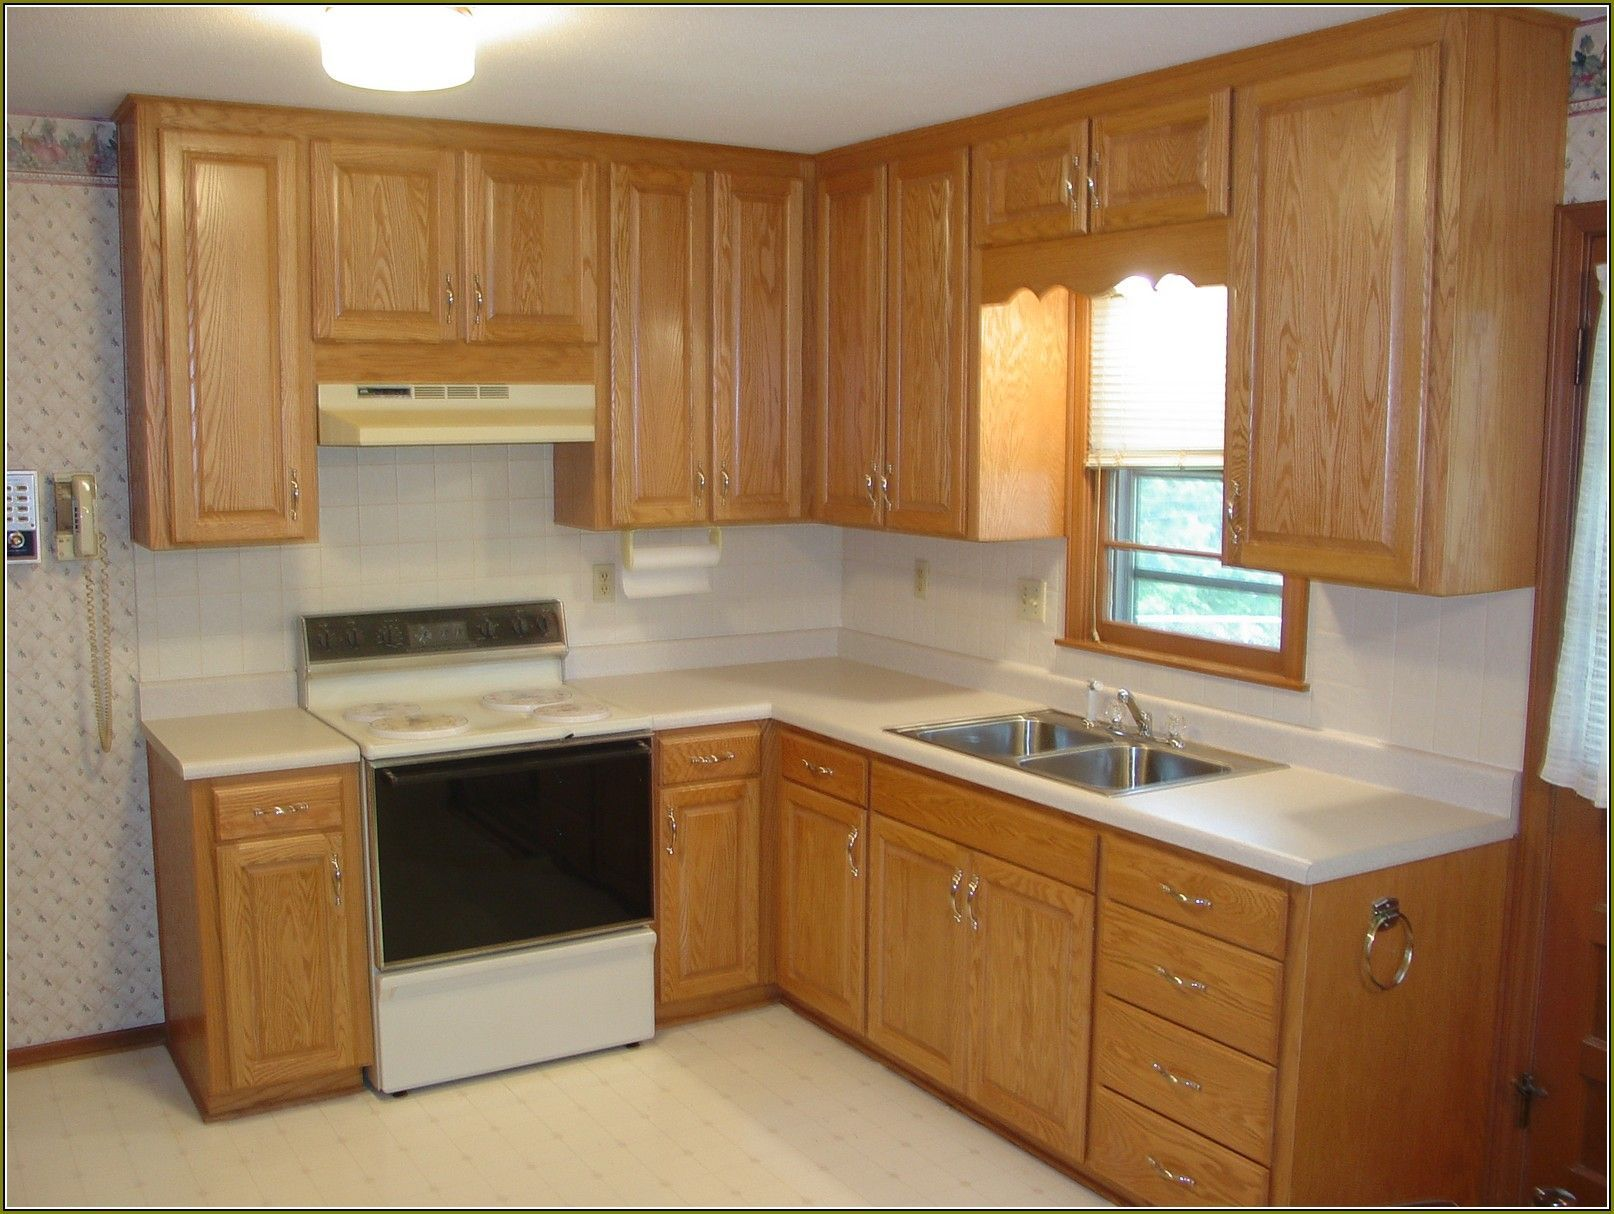 Kitchen Cabinet Doors Replacement Lowes In 2020 With Images